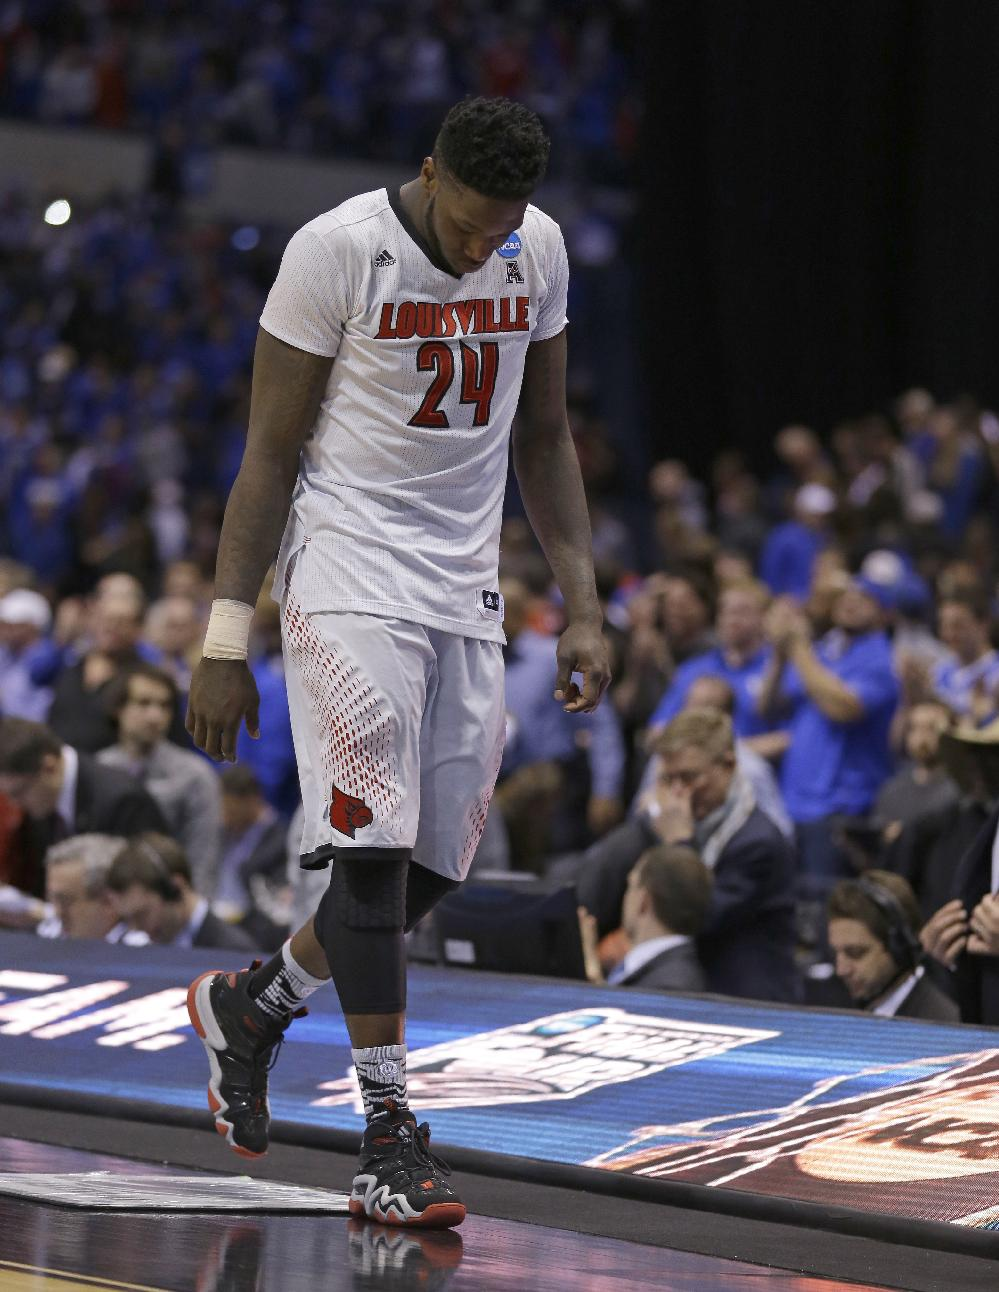 Louisville reflects on end of successful run